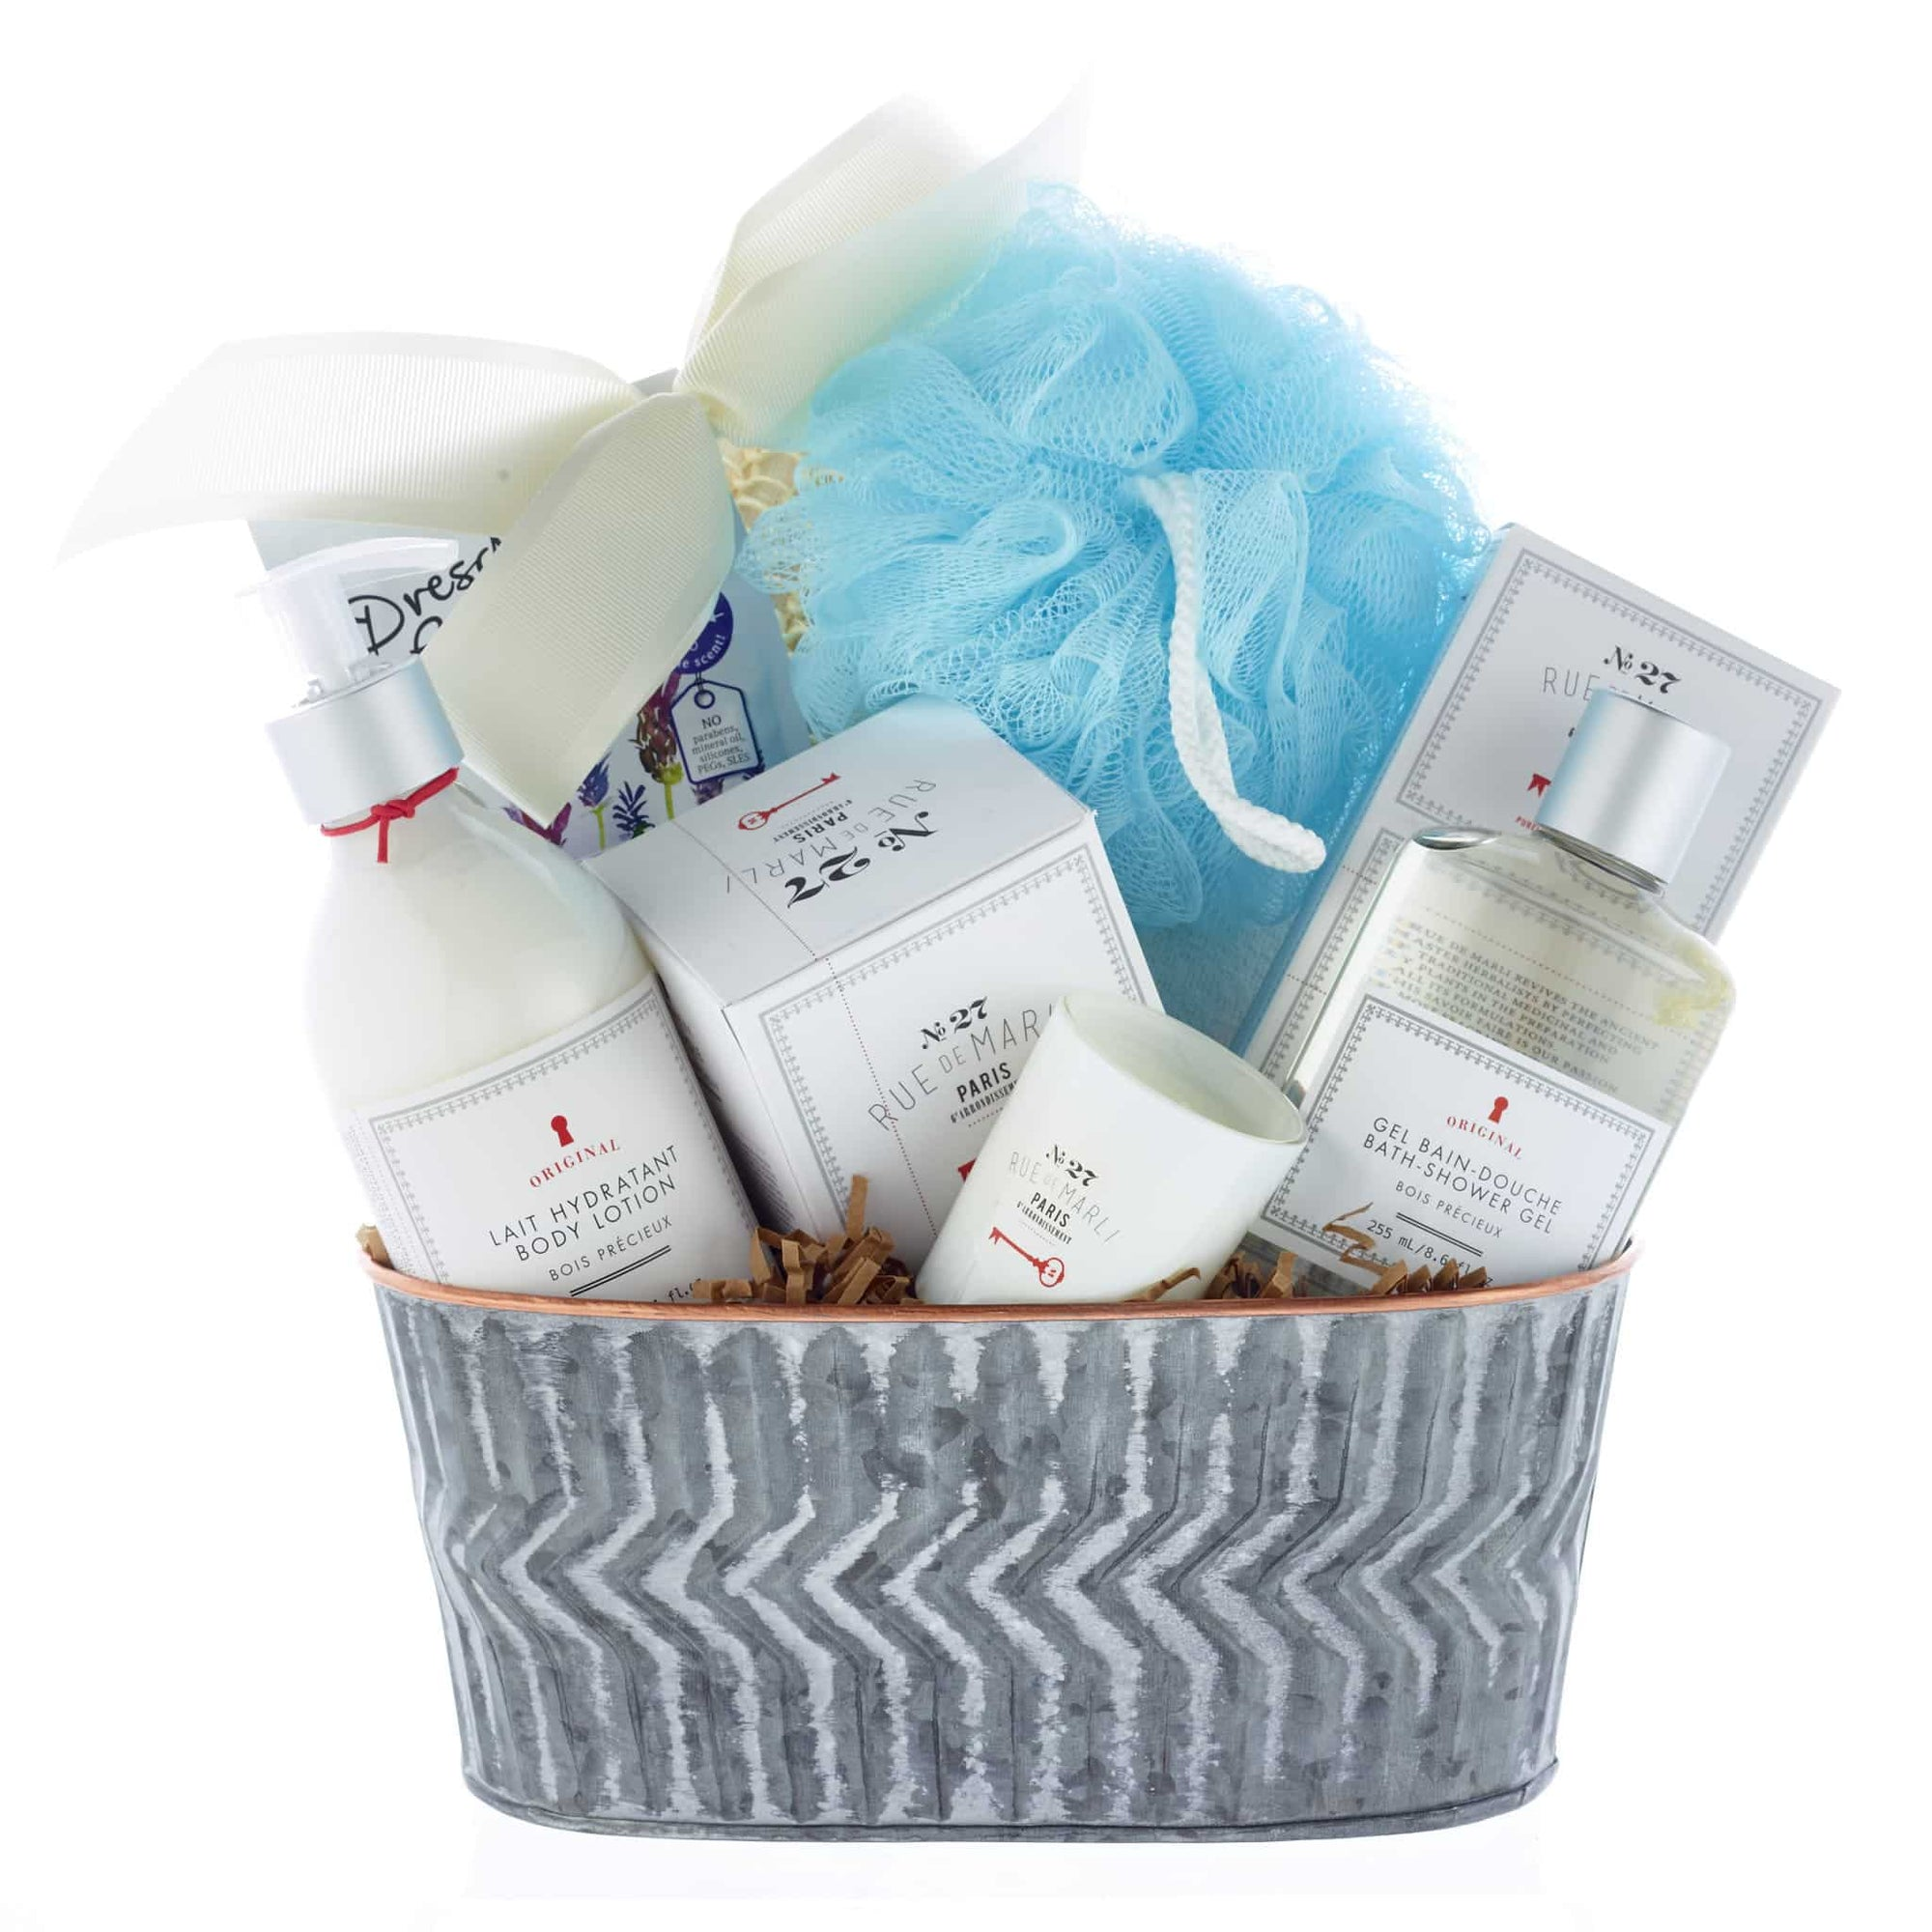 Rejuvenation Spa Gift Baskets